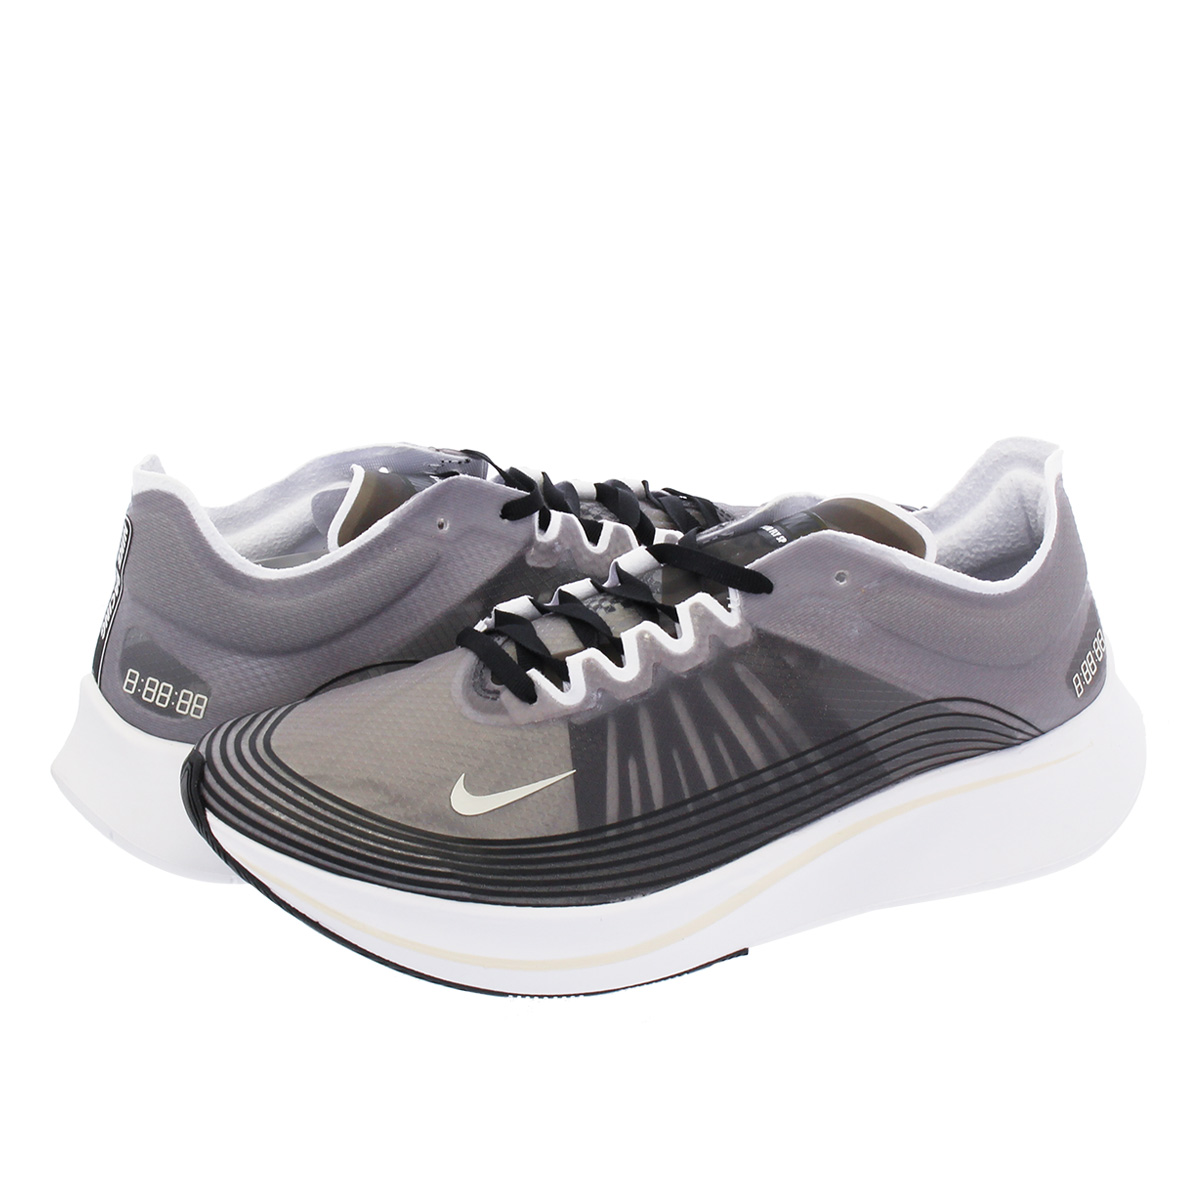 NIKE ZOOM FLY SP ナイキ ズーム フライ SP BLACK/LIGHT BONE/WHITE aj9282-001